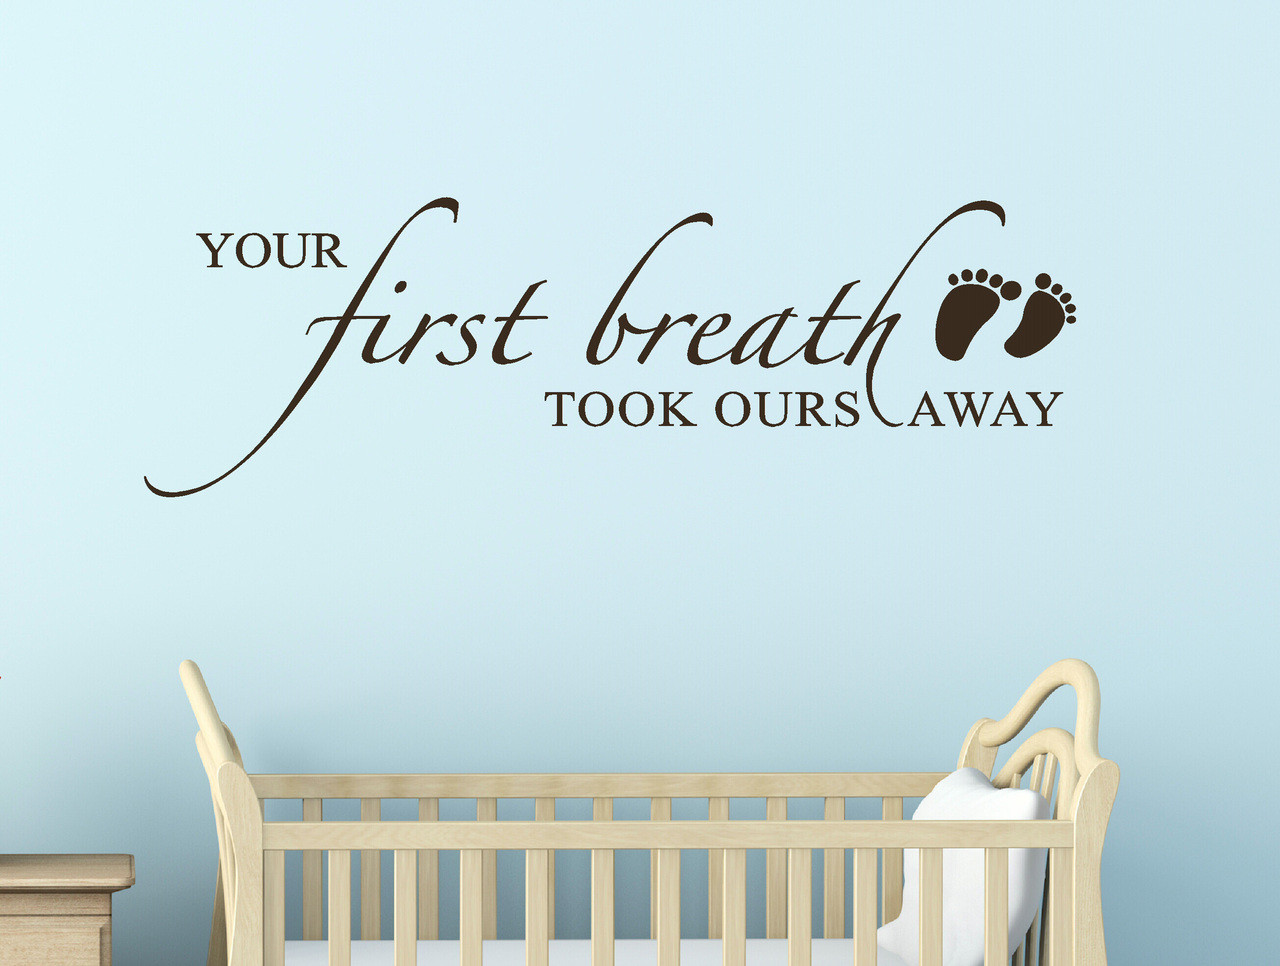 Your first breath took ours away baby vinyl stickers for nursery your first breath took ours away baby vinyl stickers for nursery wall decal saying 12x36 loading zoom amipublicfo Gallery